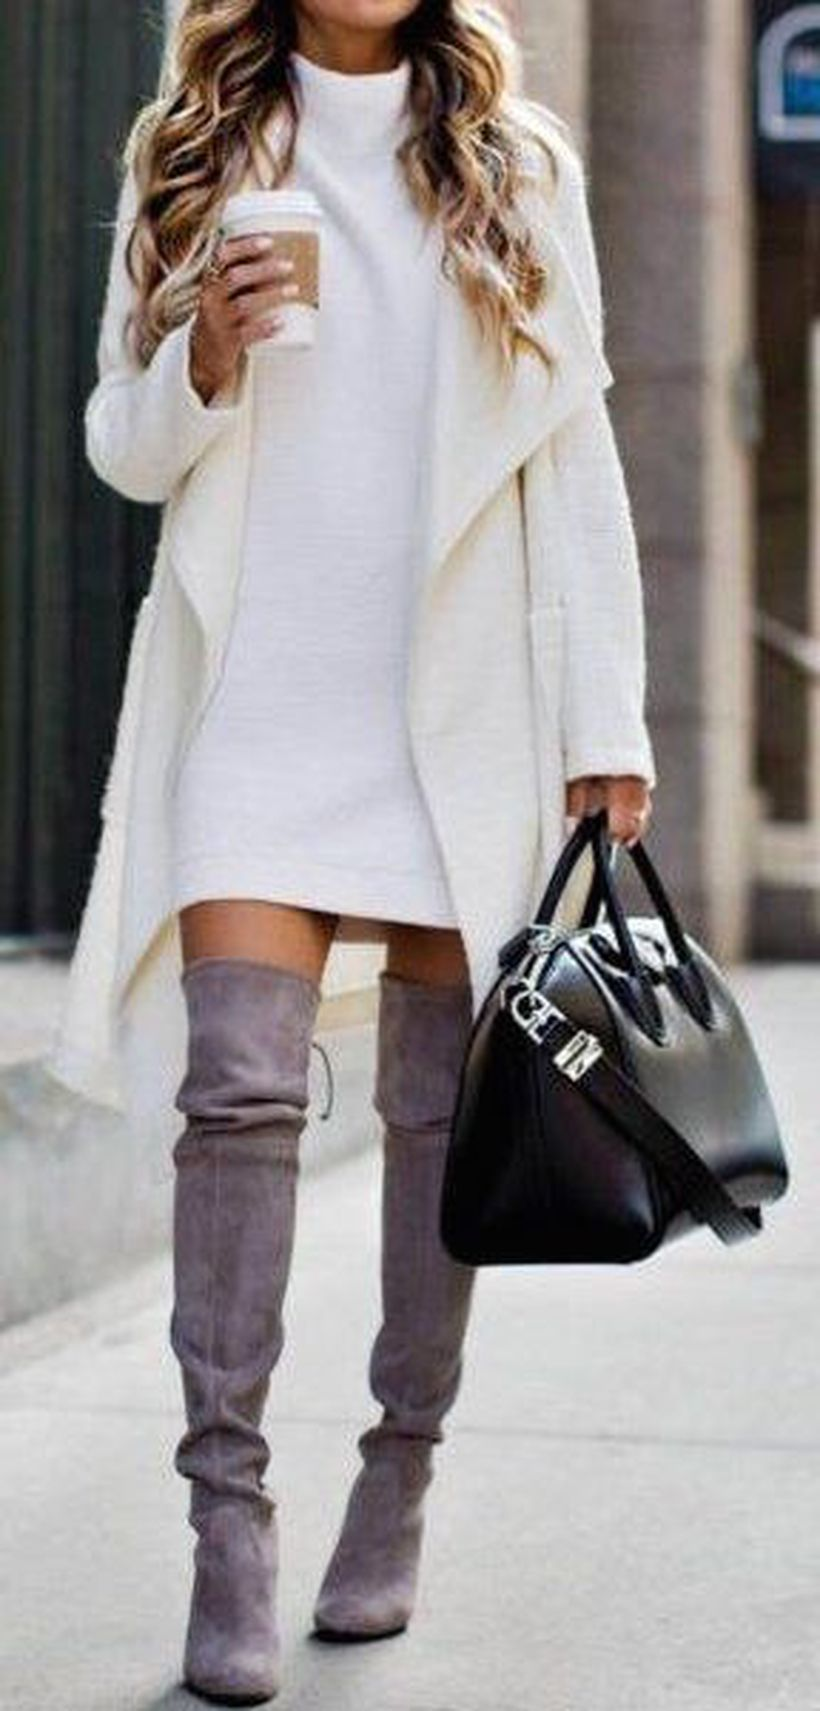 Fashionable outfit style for winter 2017 42